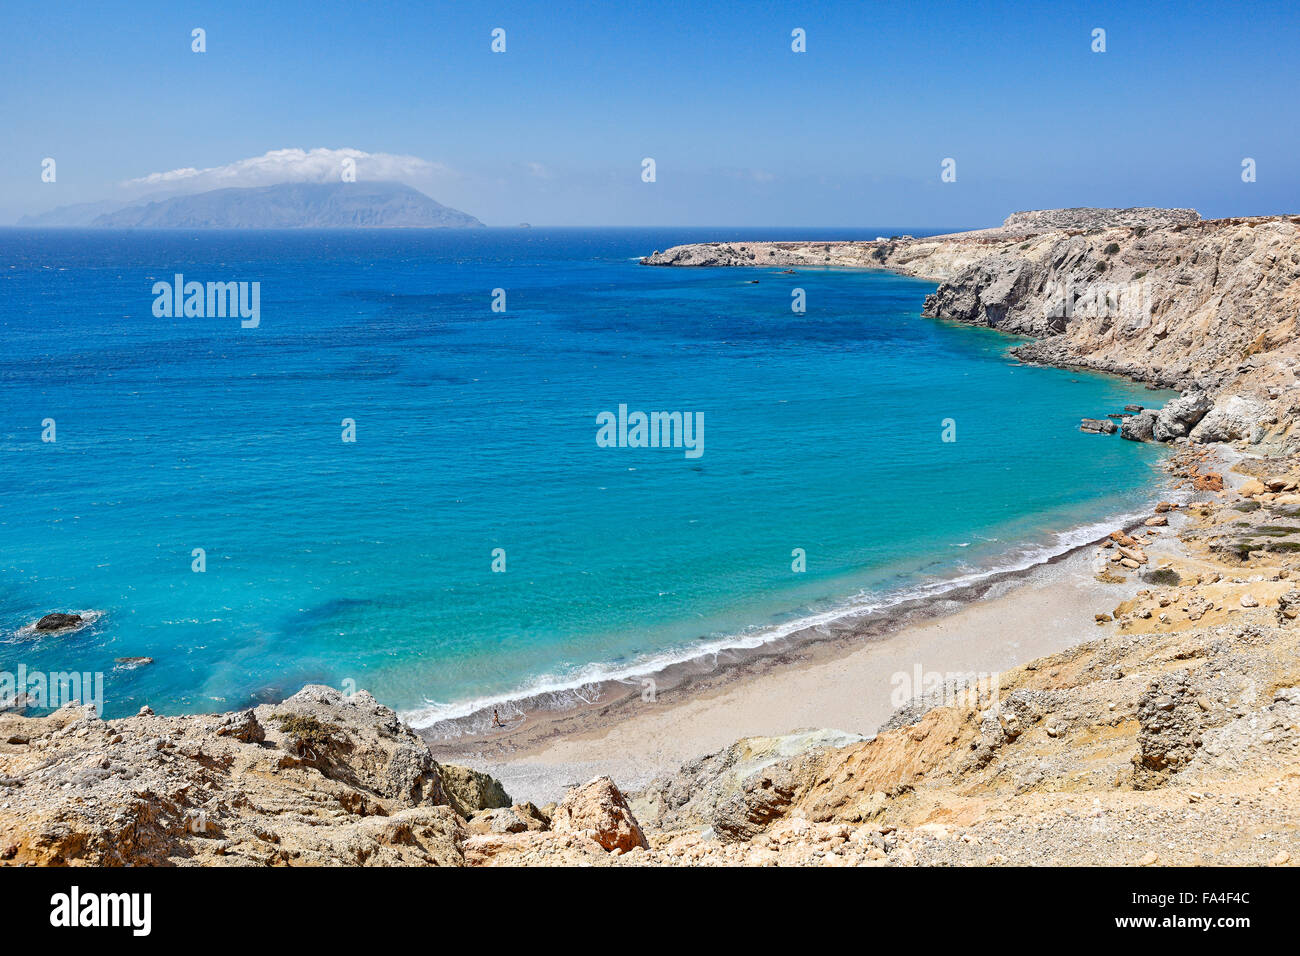 Araki beach in Karpathos, Greece Stock Photo